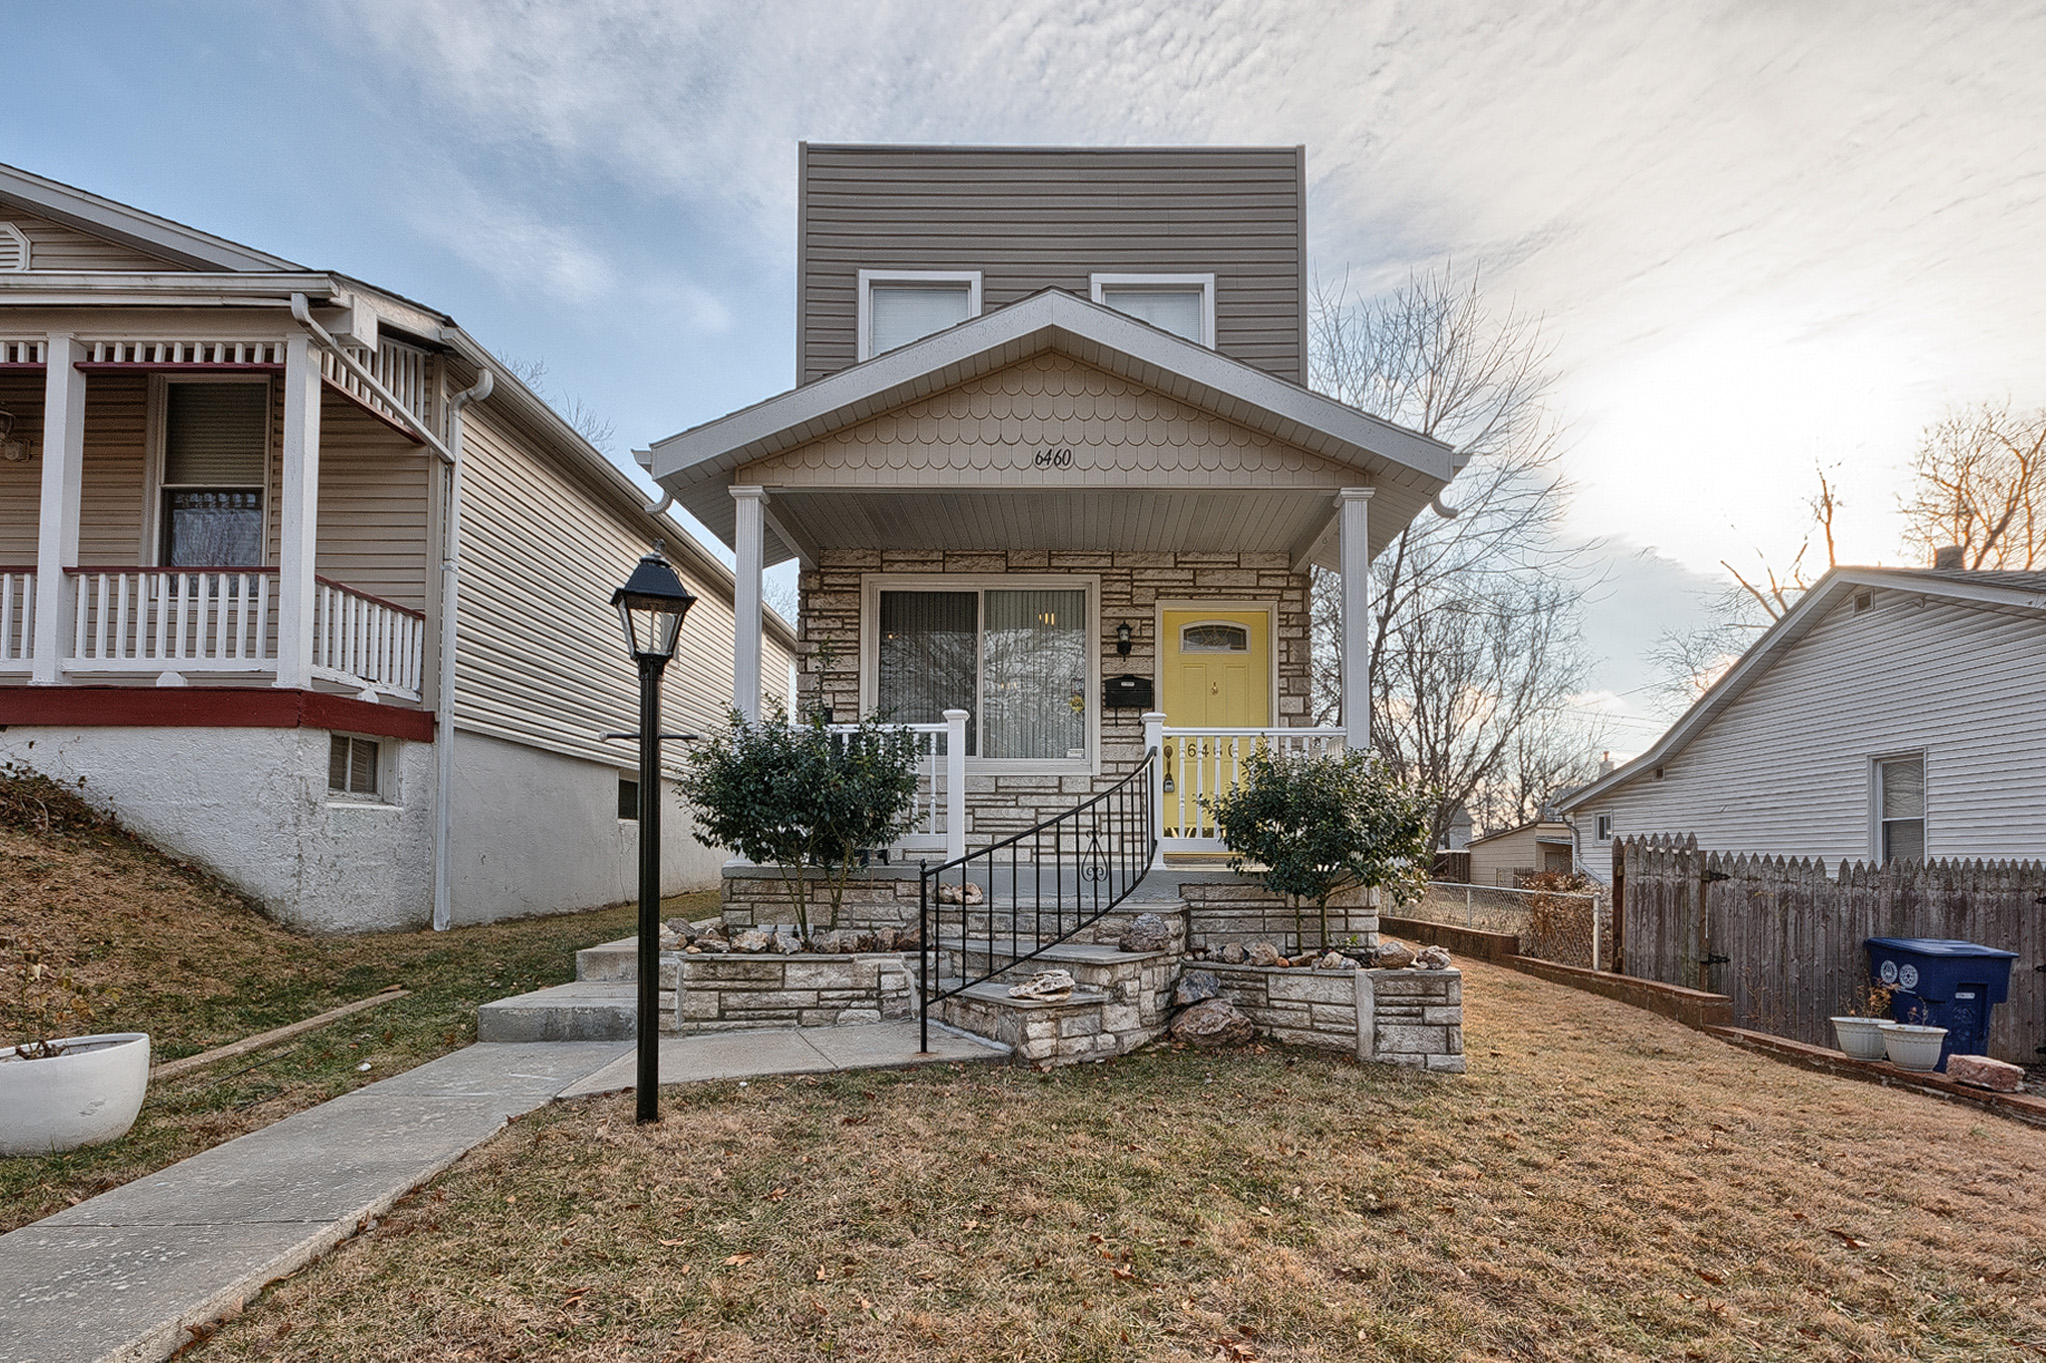 6460 Marmaduke Ave., St. Louis, MO 63139 is for sale